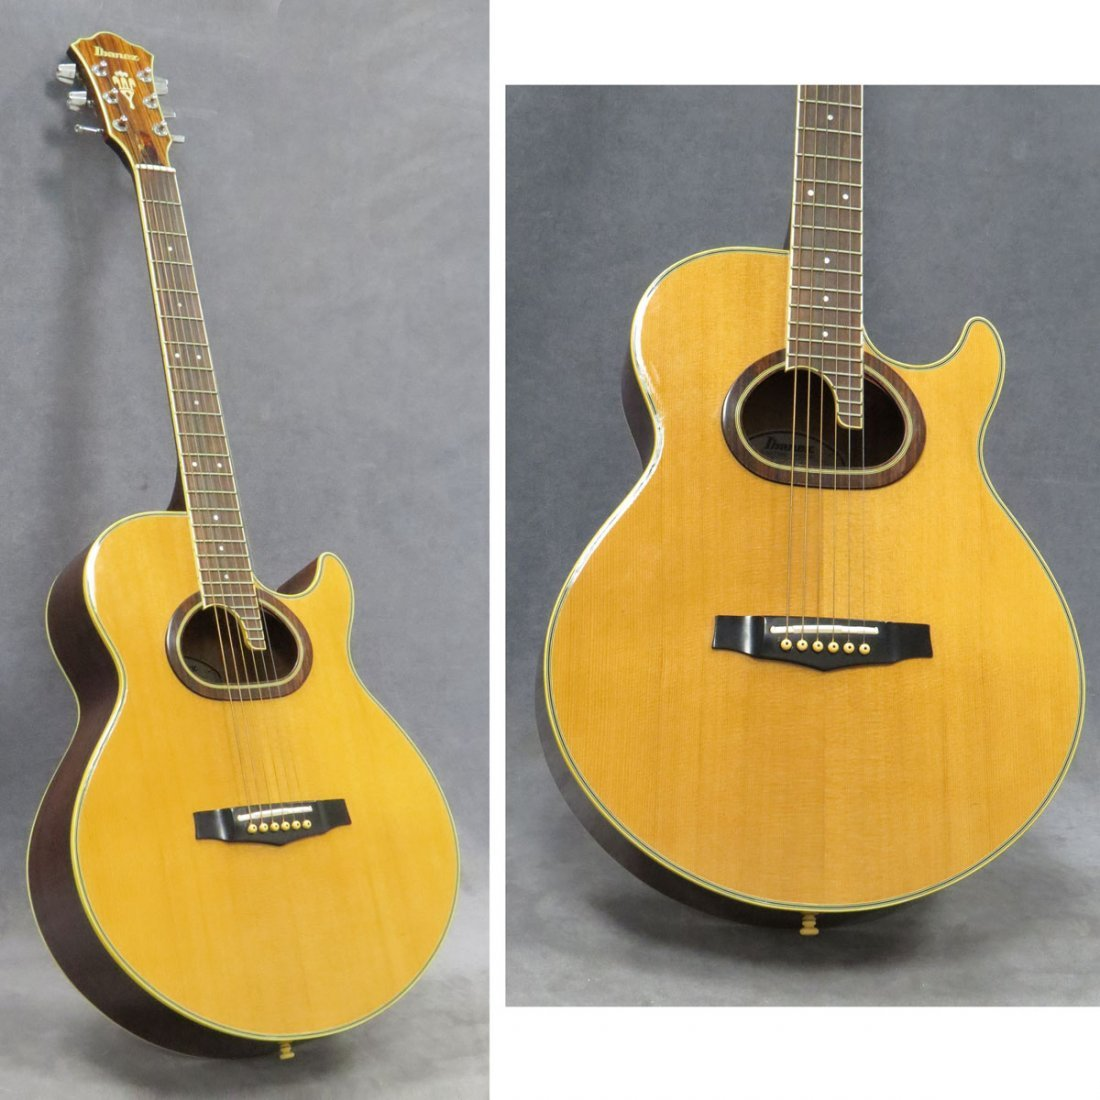 IBANEZ RAGTIME SPECIAL A-400 ACOUSTIC GUITAR